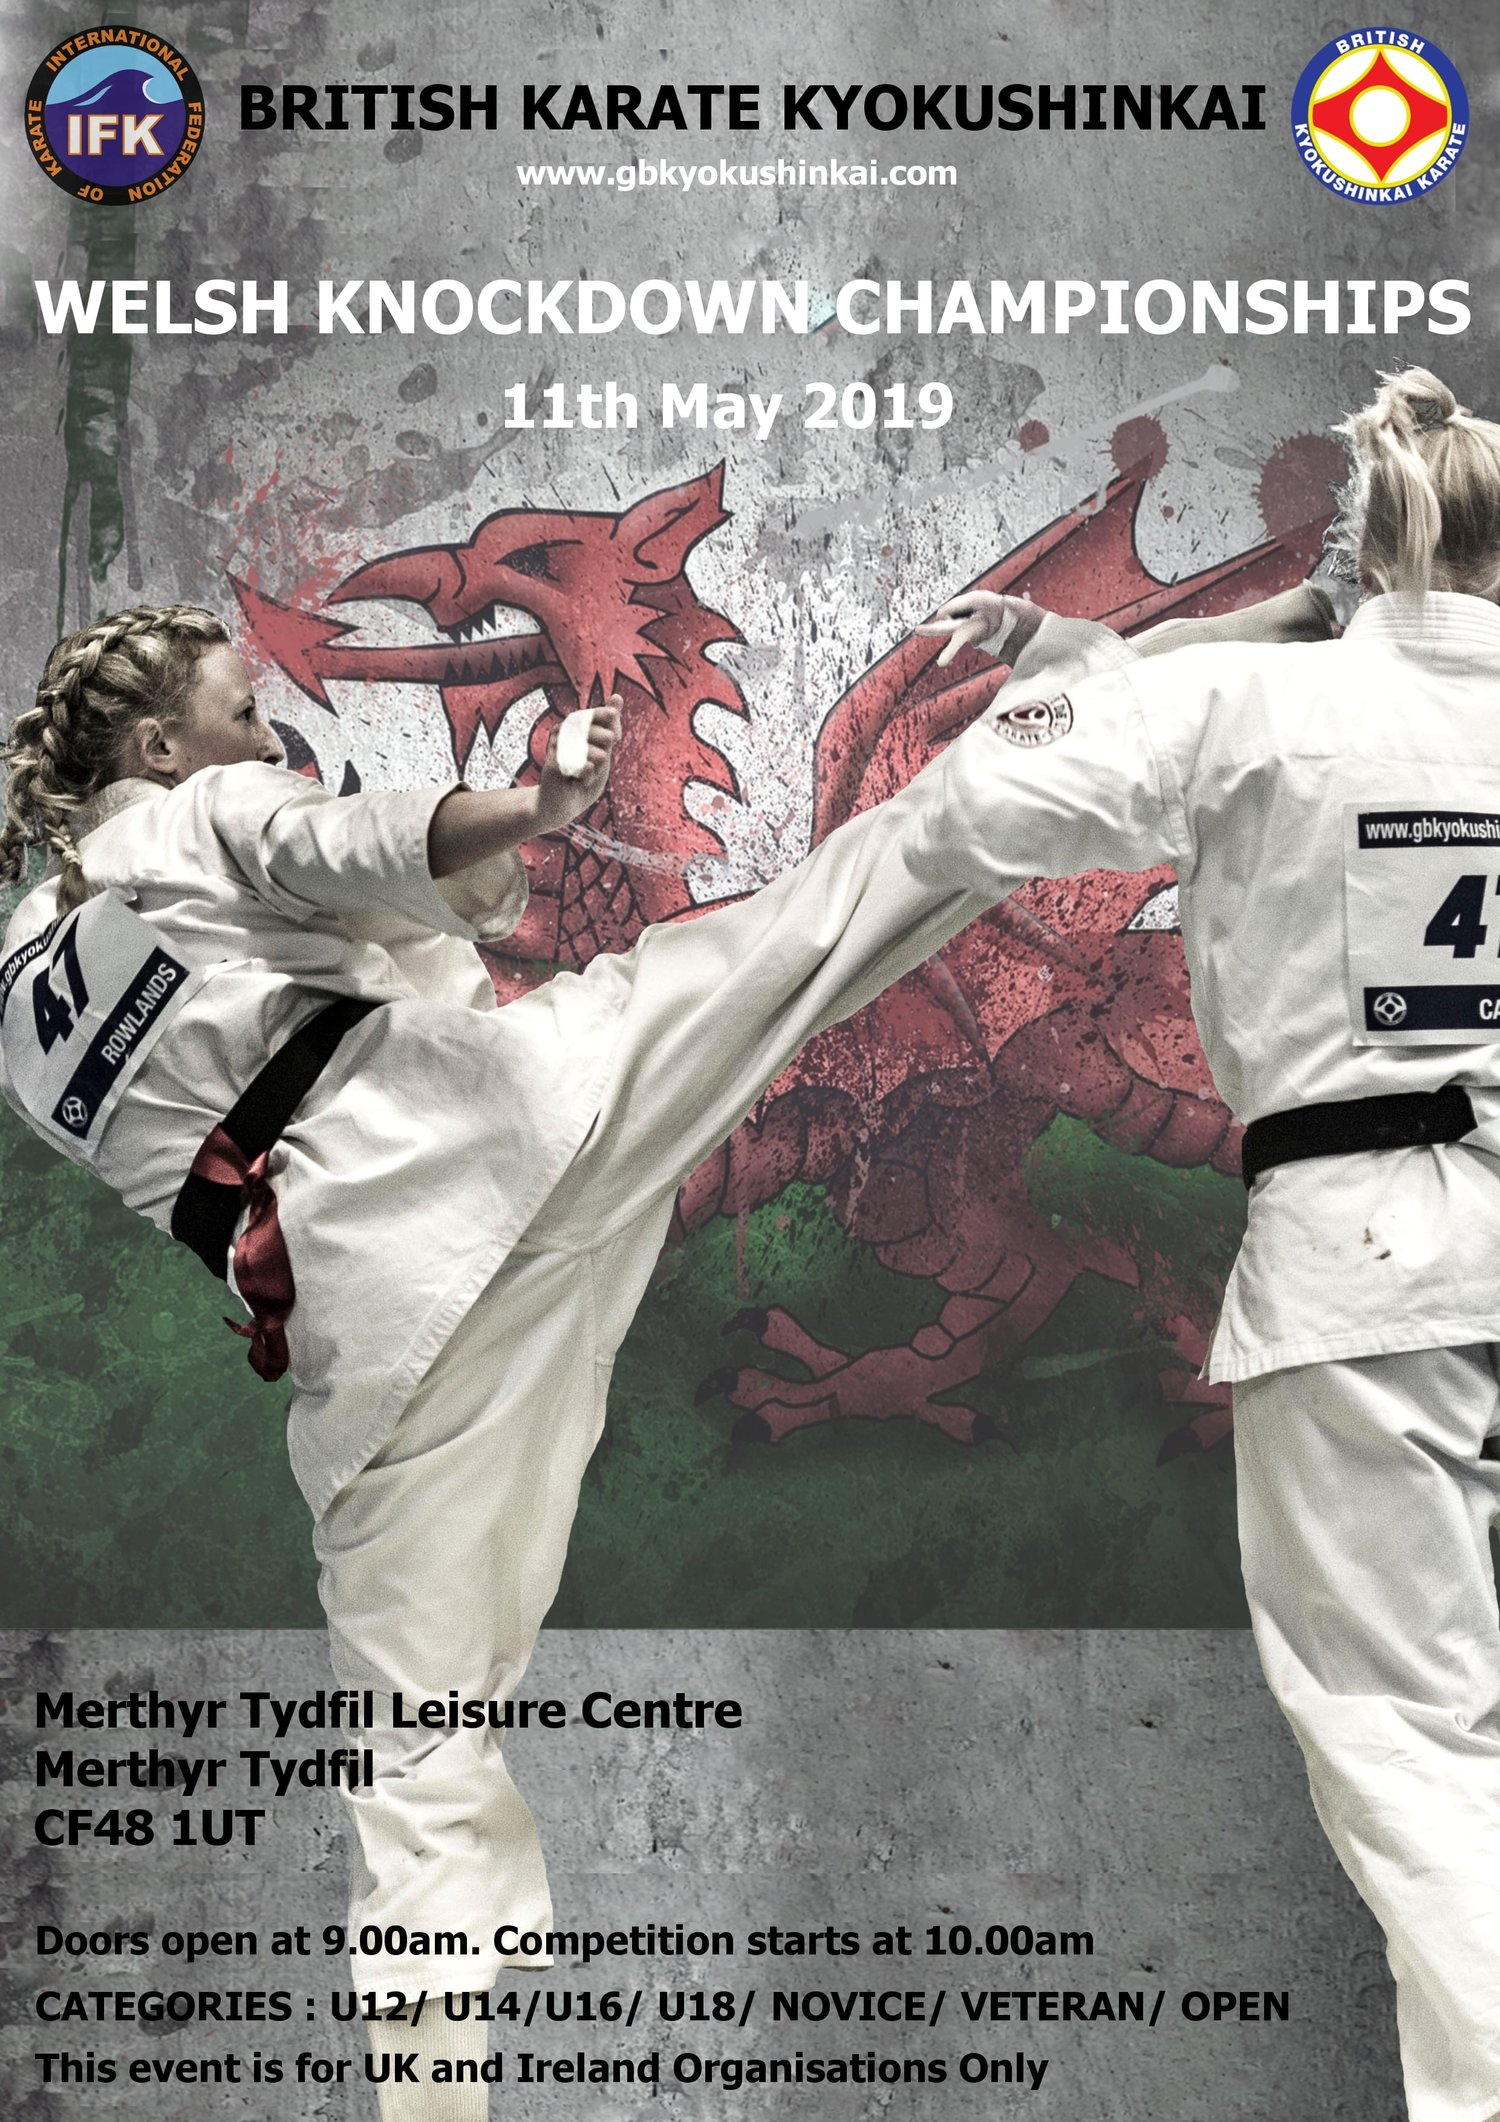 Welsh Knockdown Championships 2019 registered fighters and